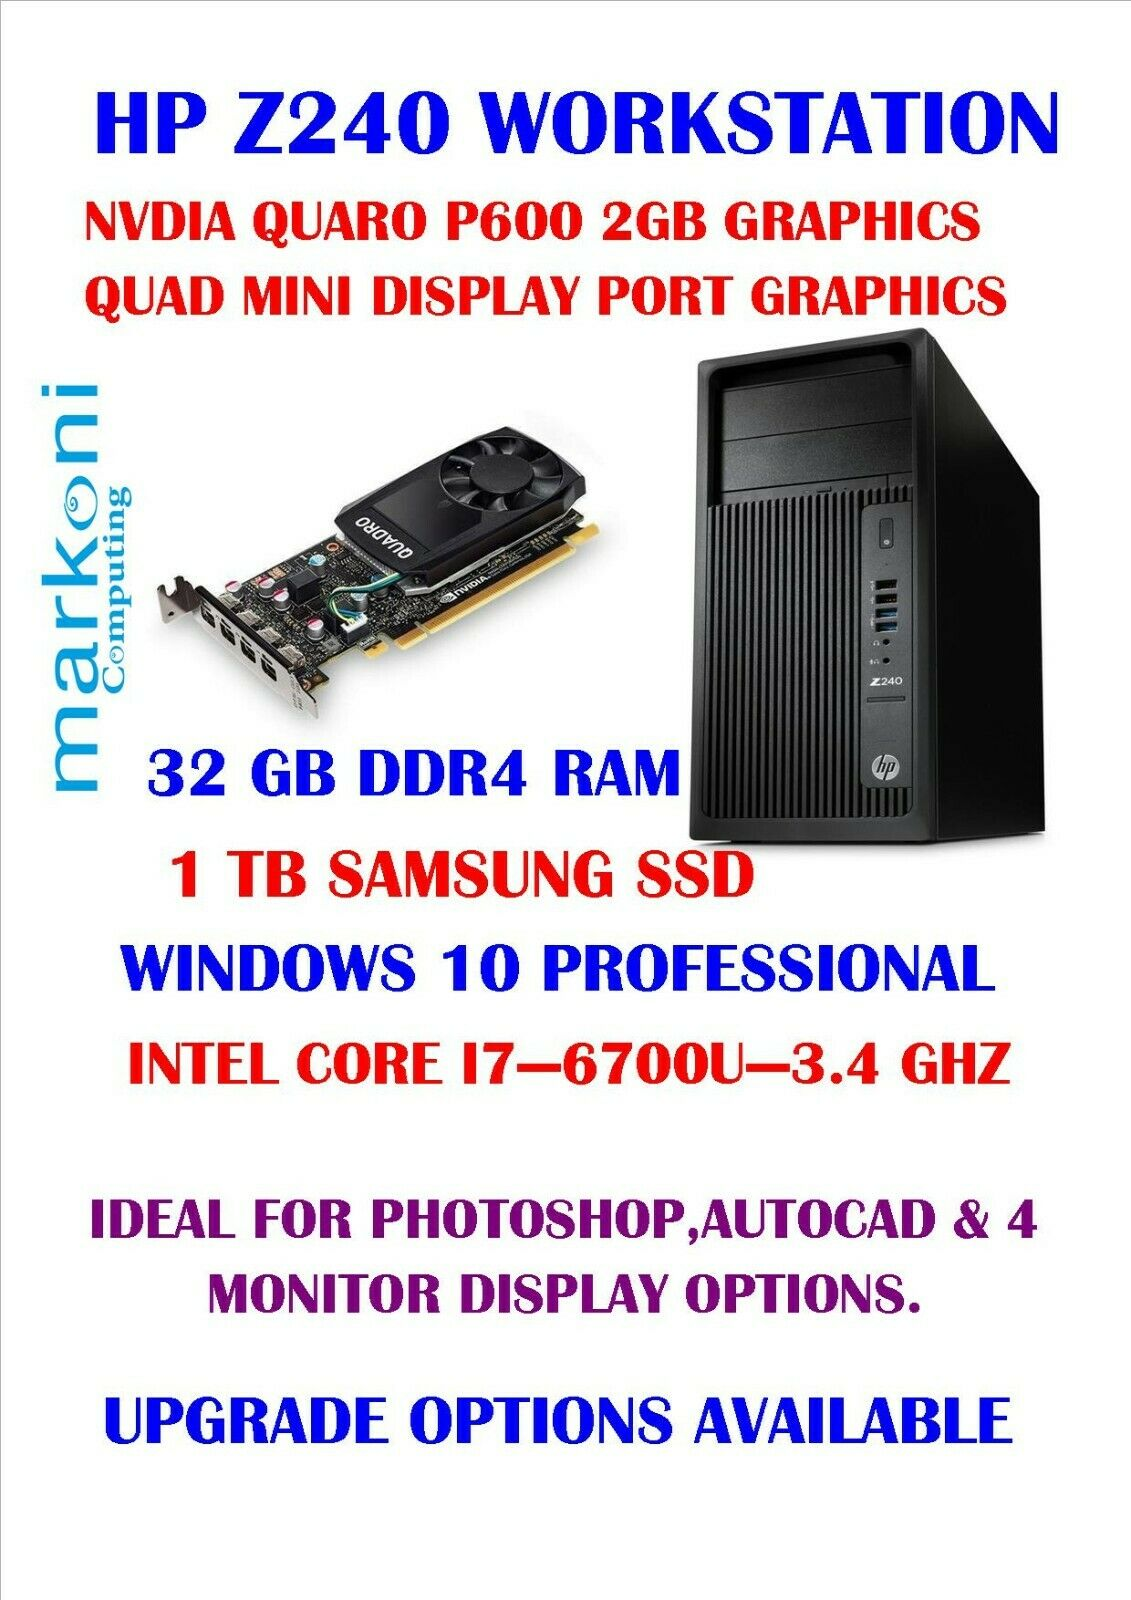 Zotac Geforce Synergy Edition Gt220 1gb Ddr3 Pci E Graphics Card Vga 1 Of 2only 3 Available